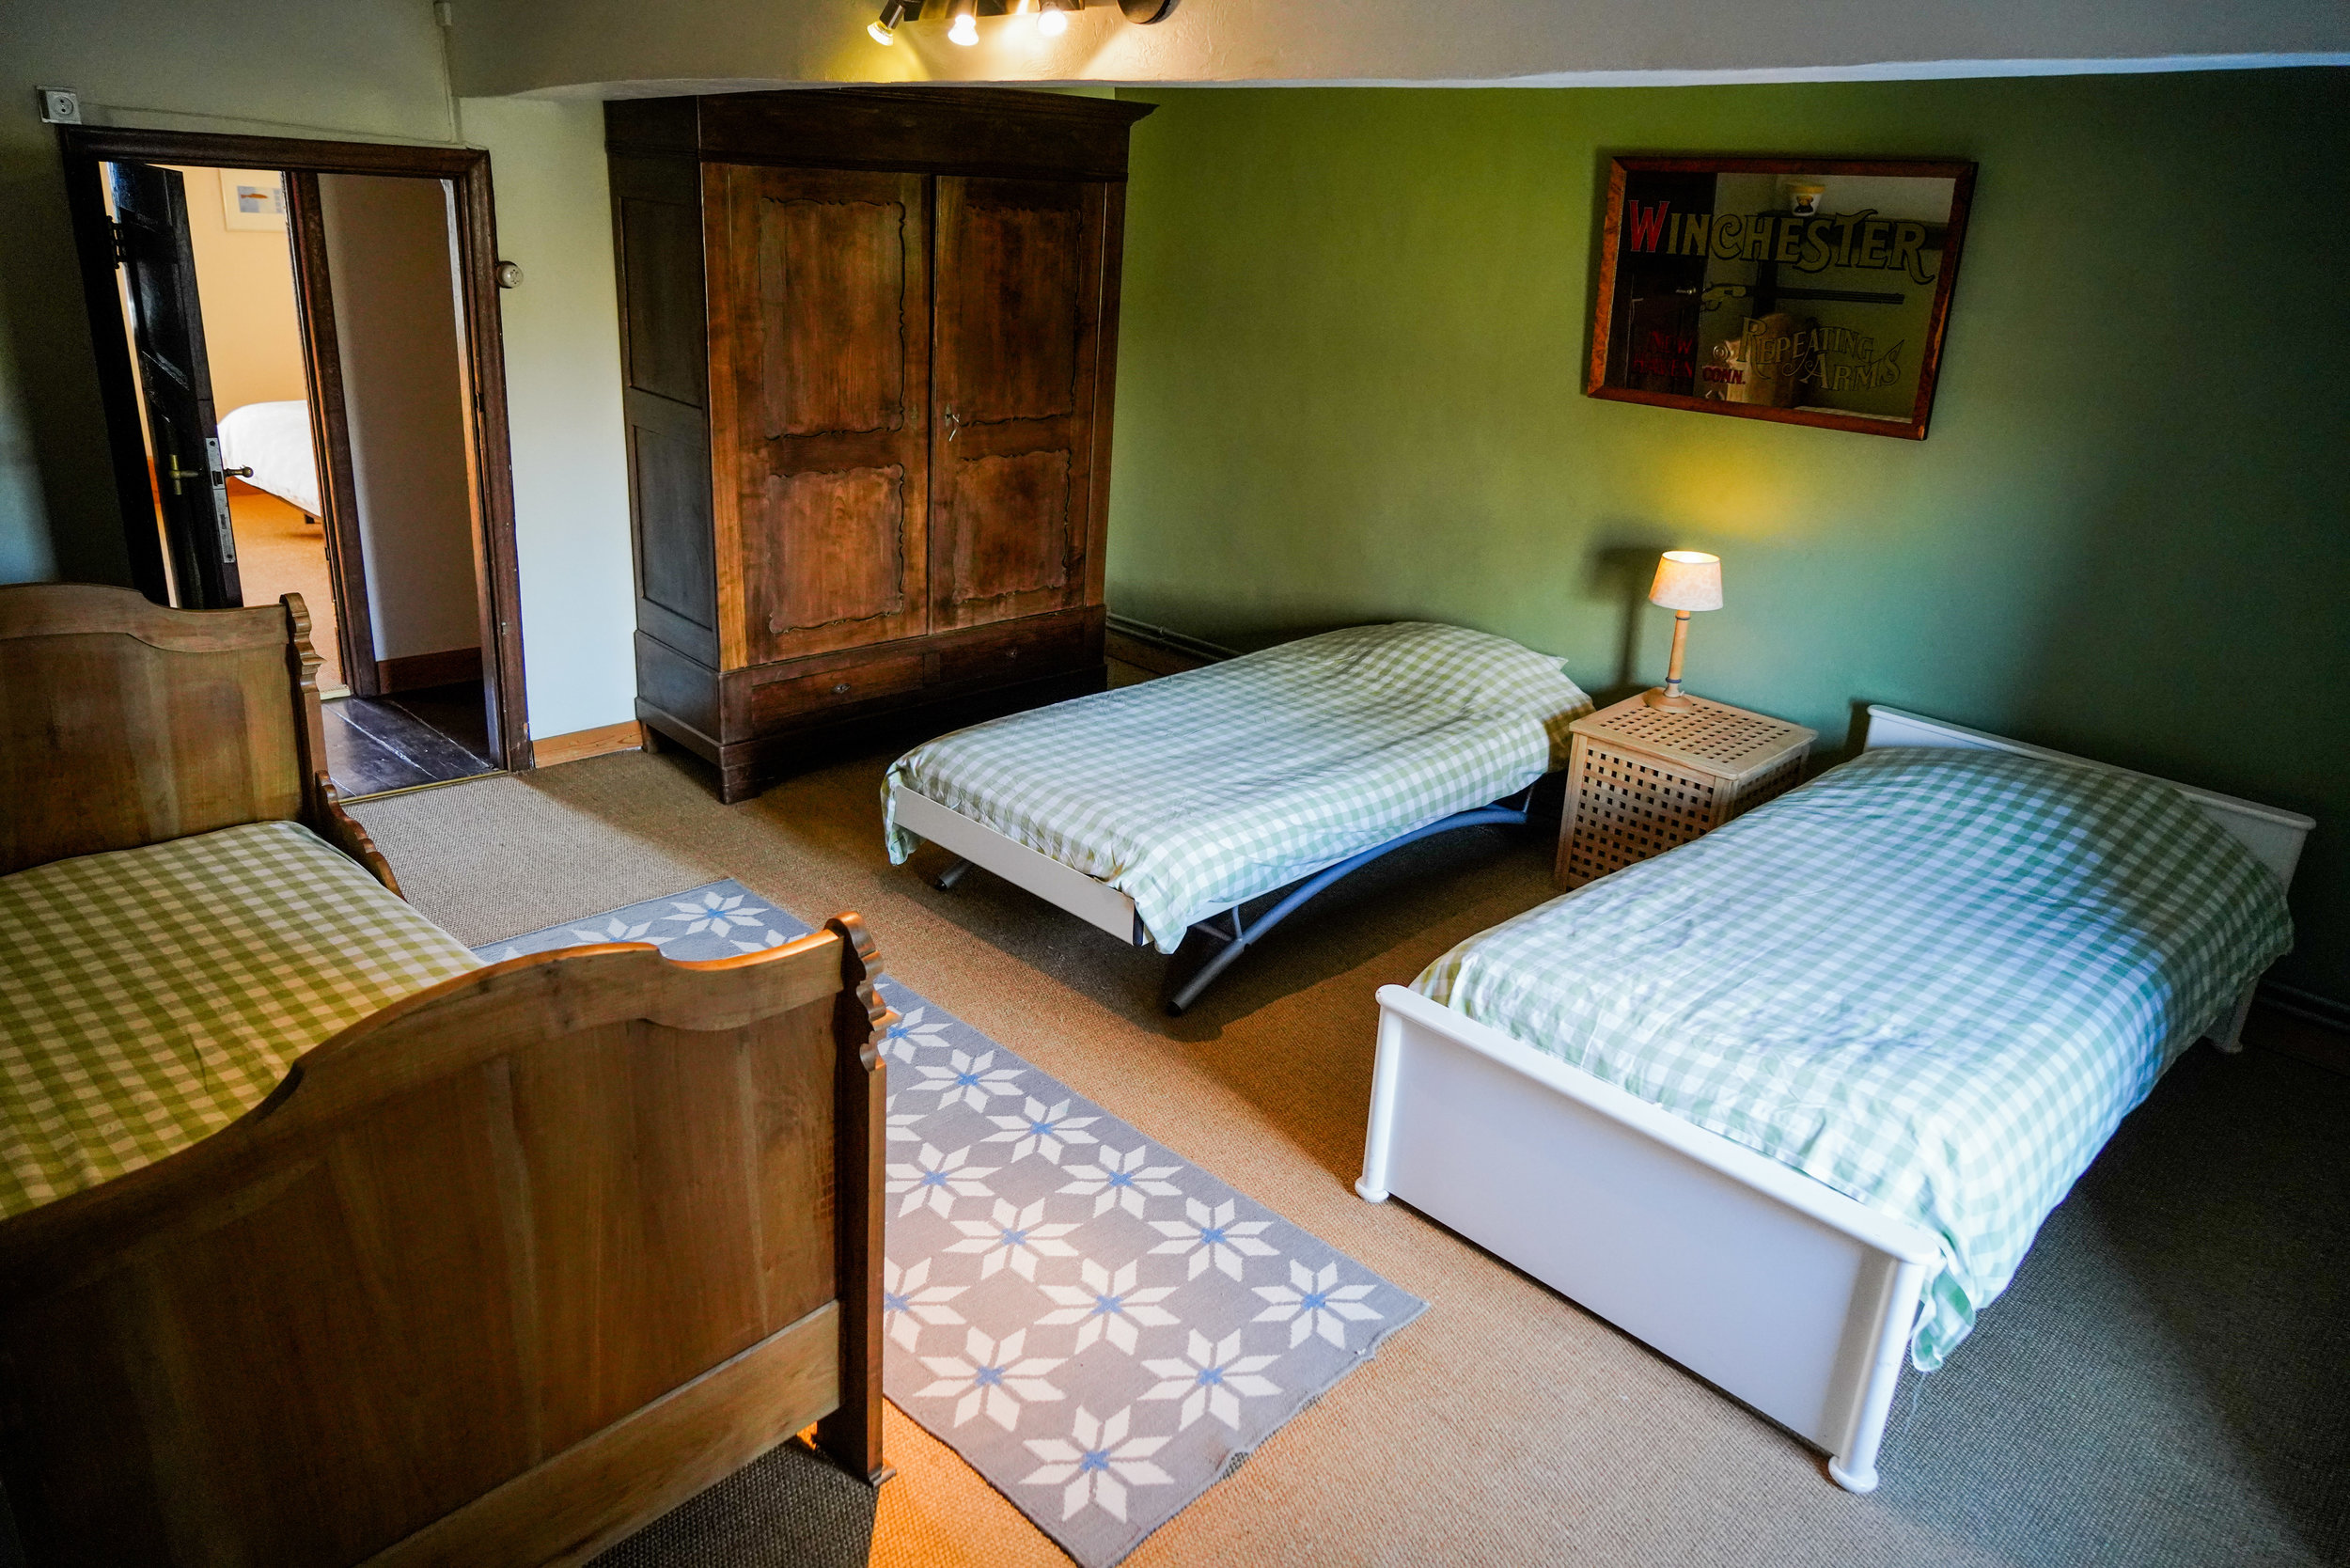 Bedroom 3 - With 3 single beds